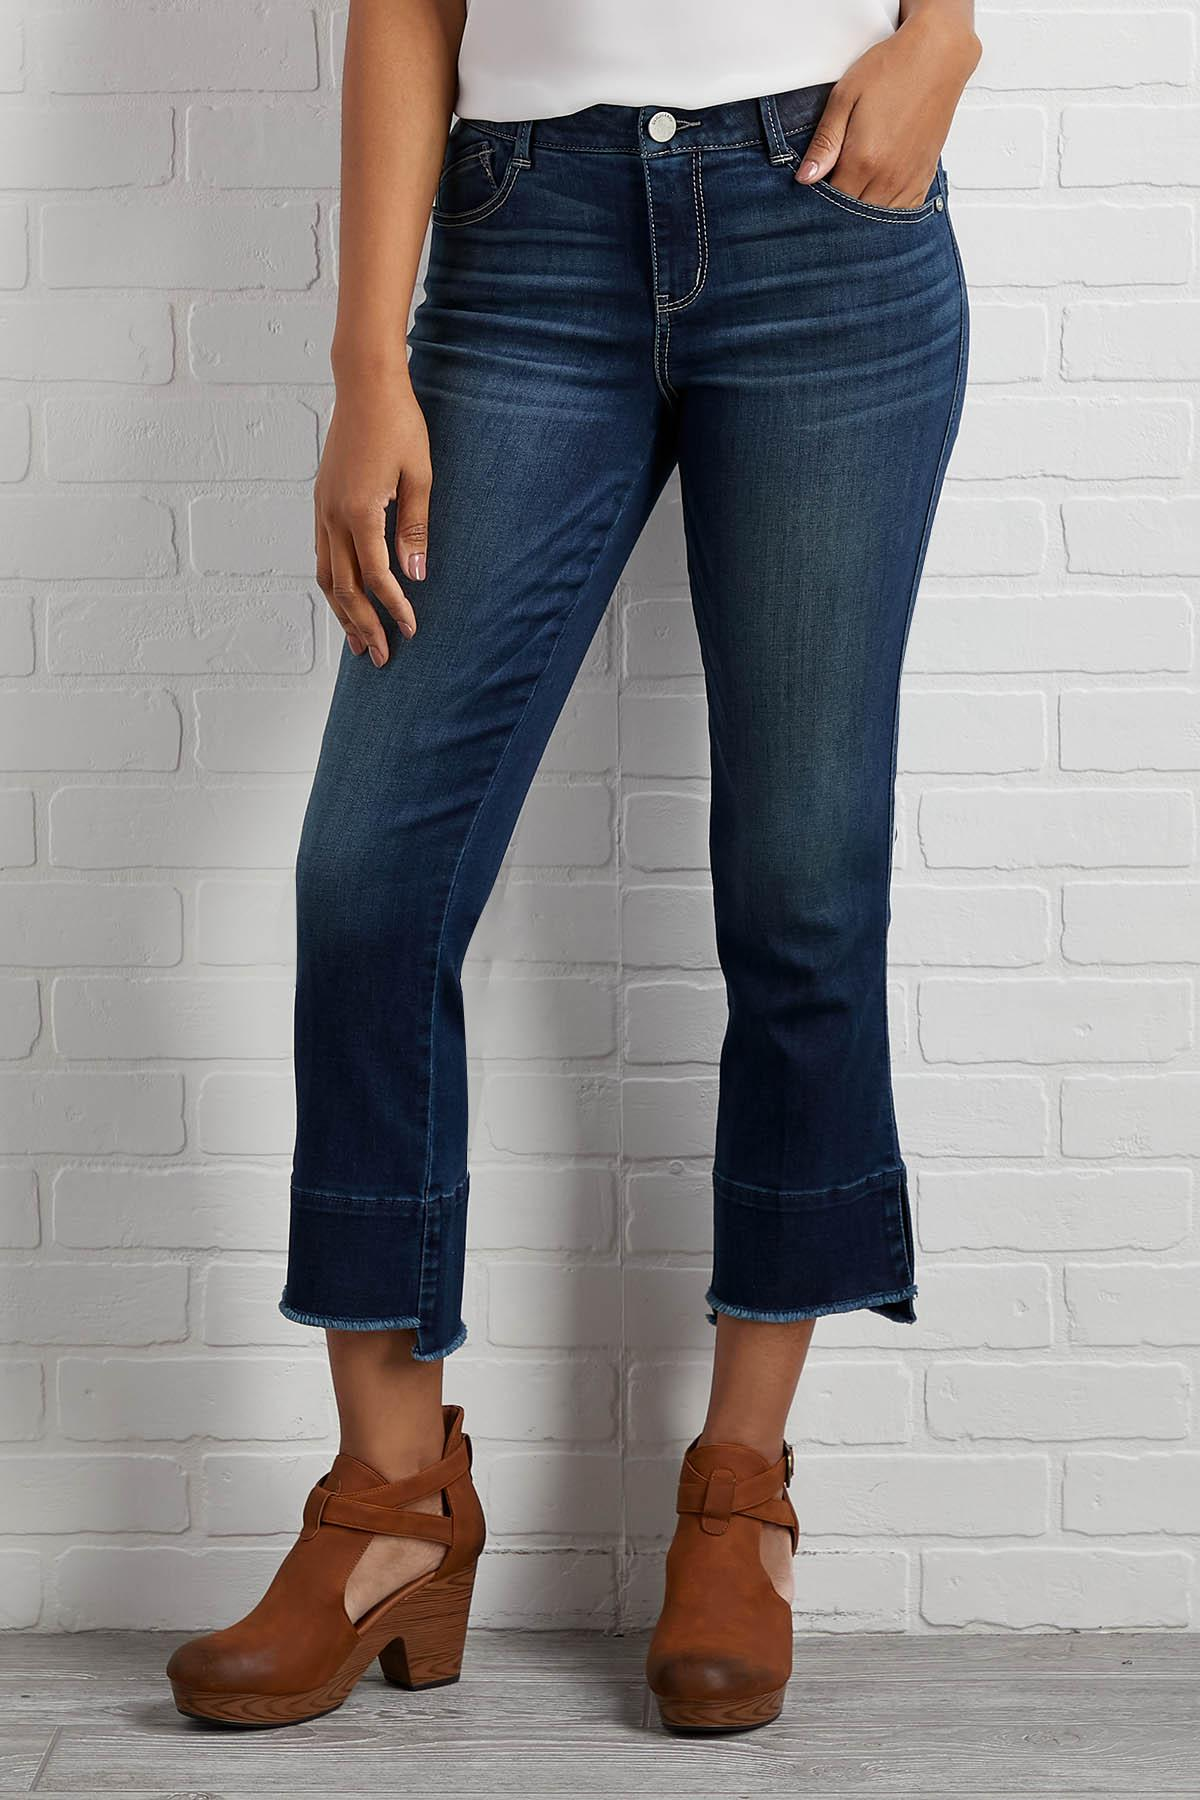 For A Slit Second Jeans